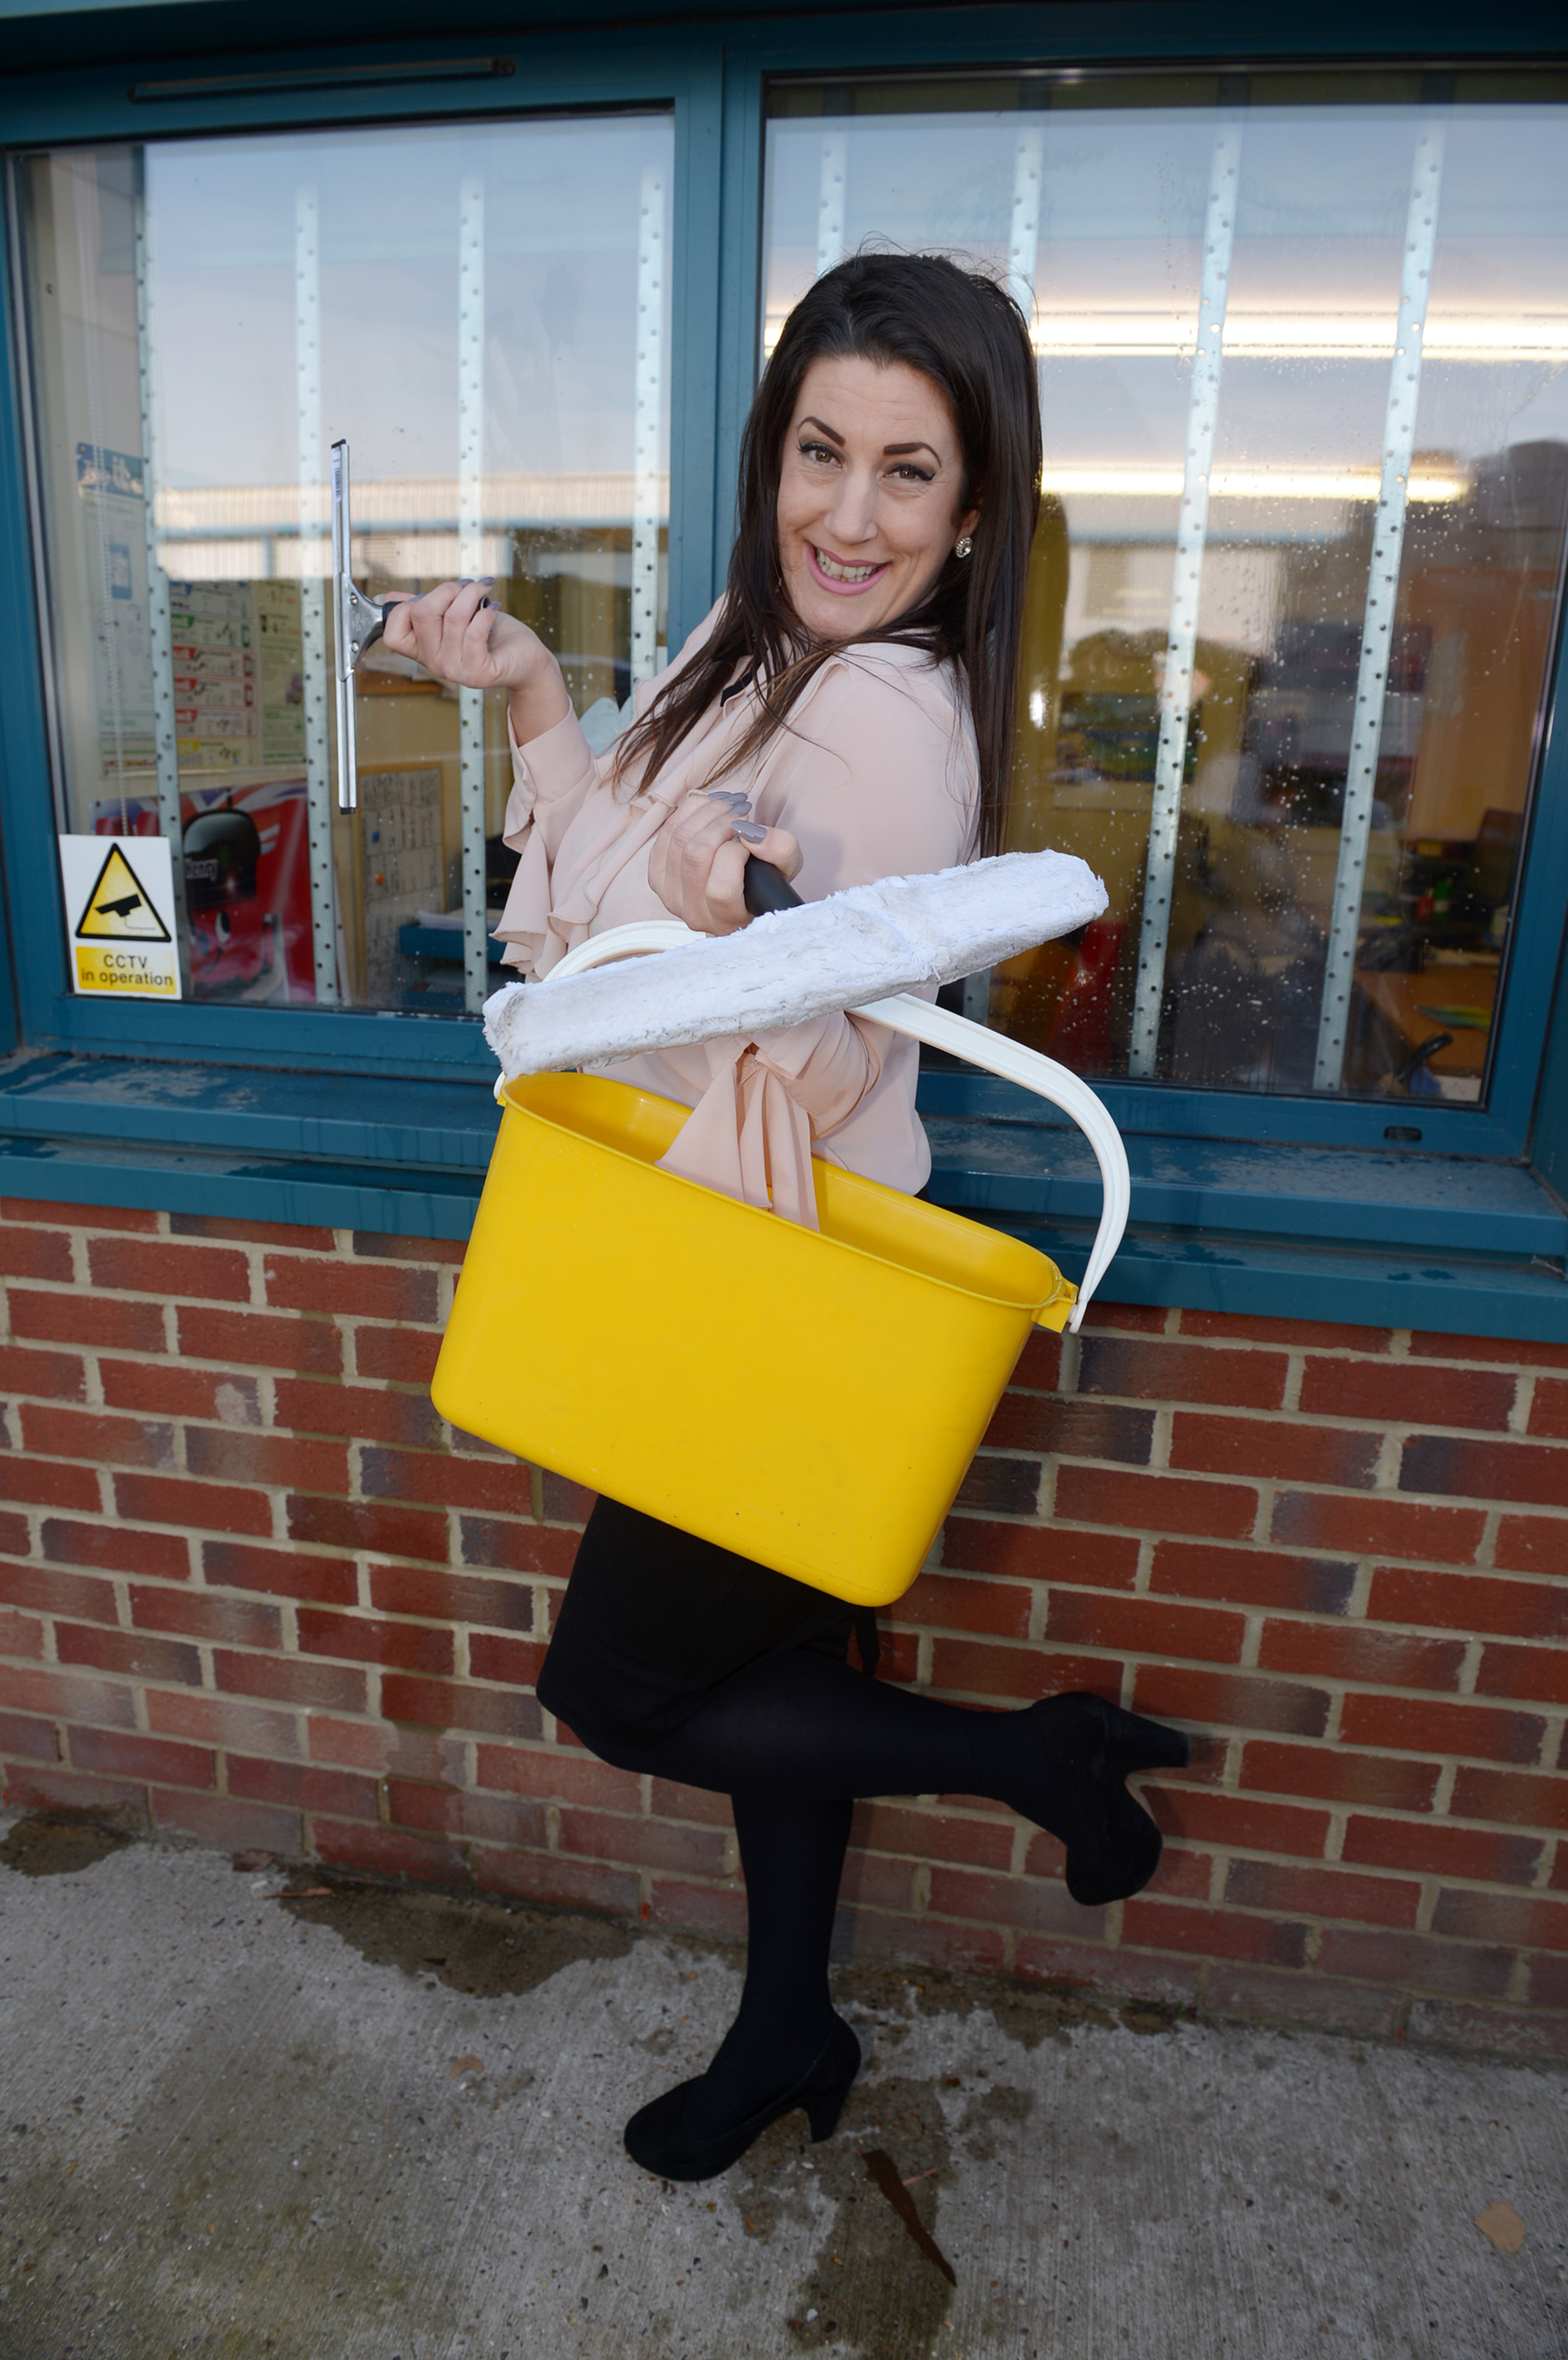 Sarah Mitchell.Roche View business park, Millhead Way, Rochford .Sarah Mitchell will be attempting to beat the world record for window cleaning tomorrow in her high heels...